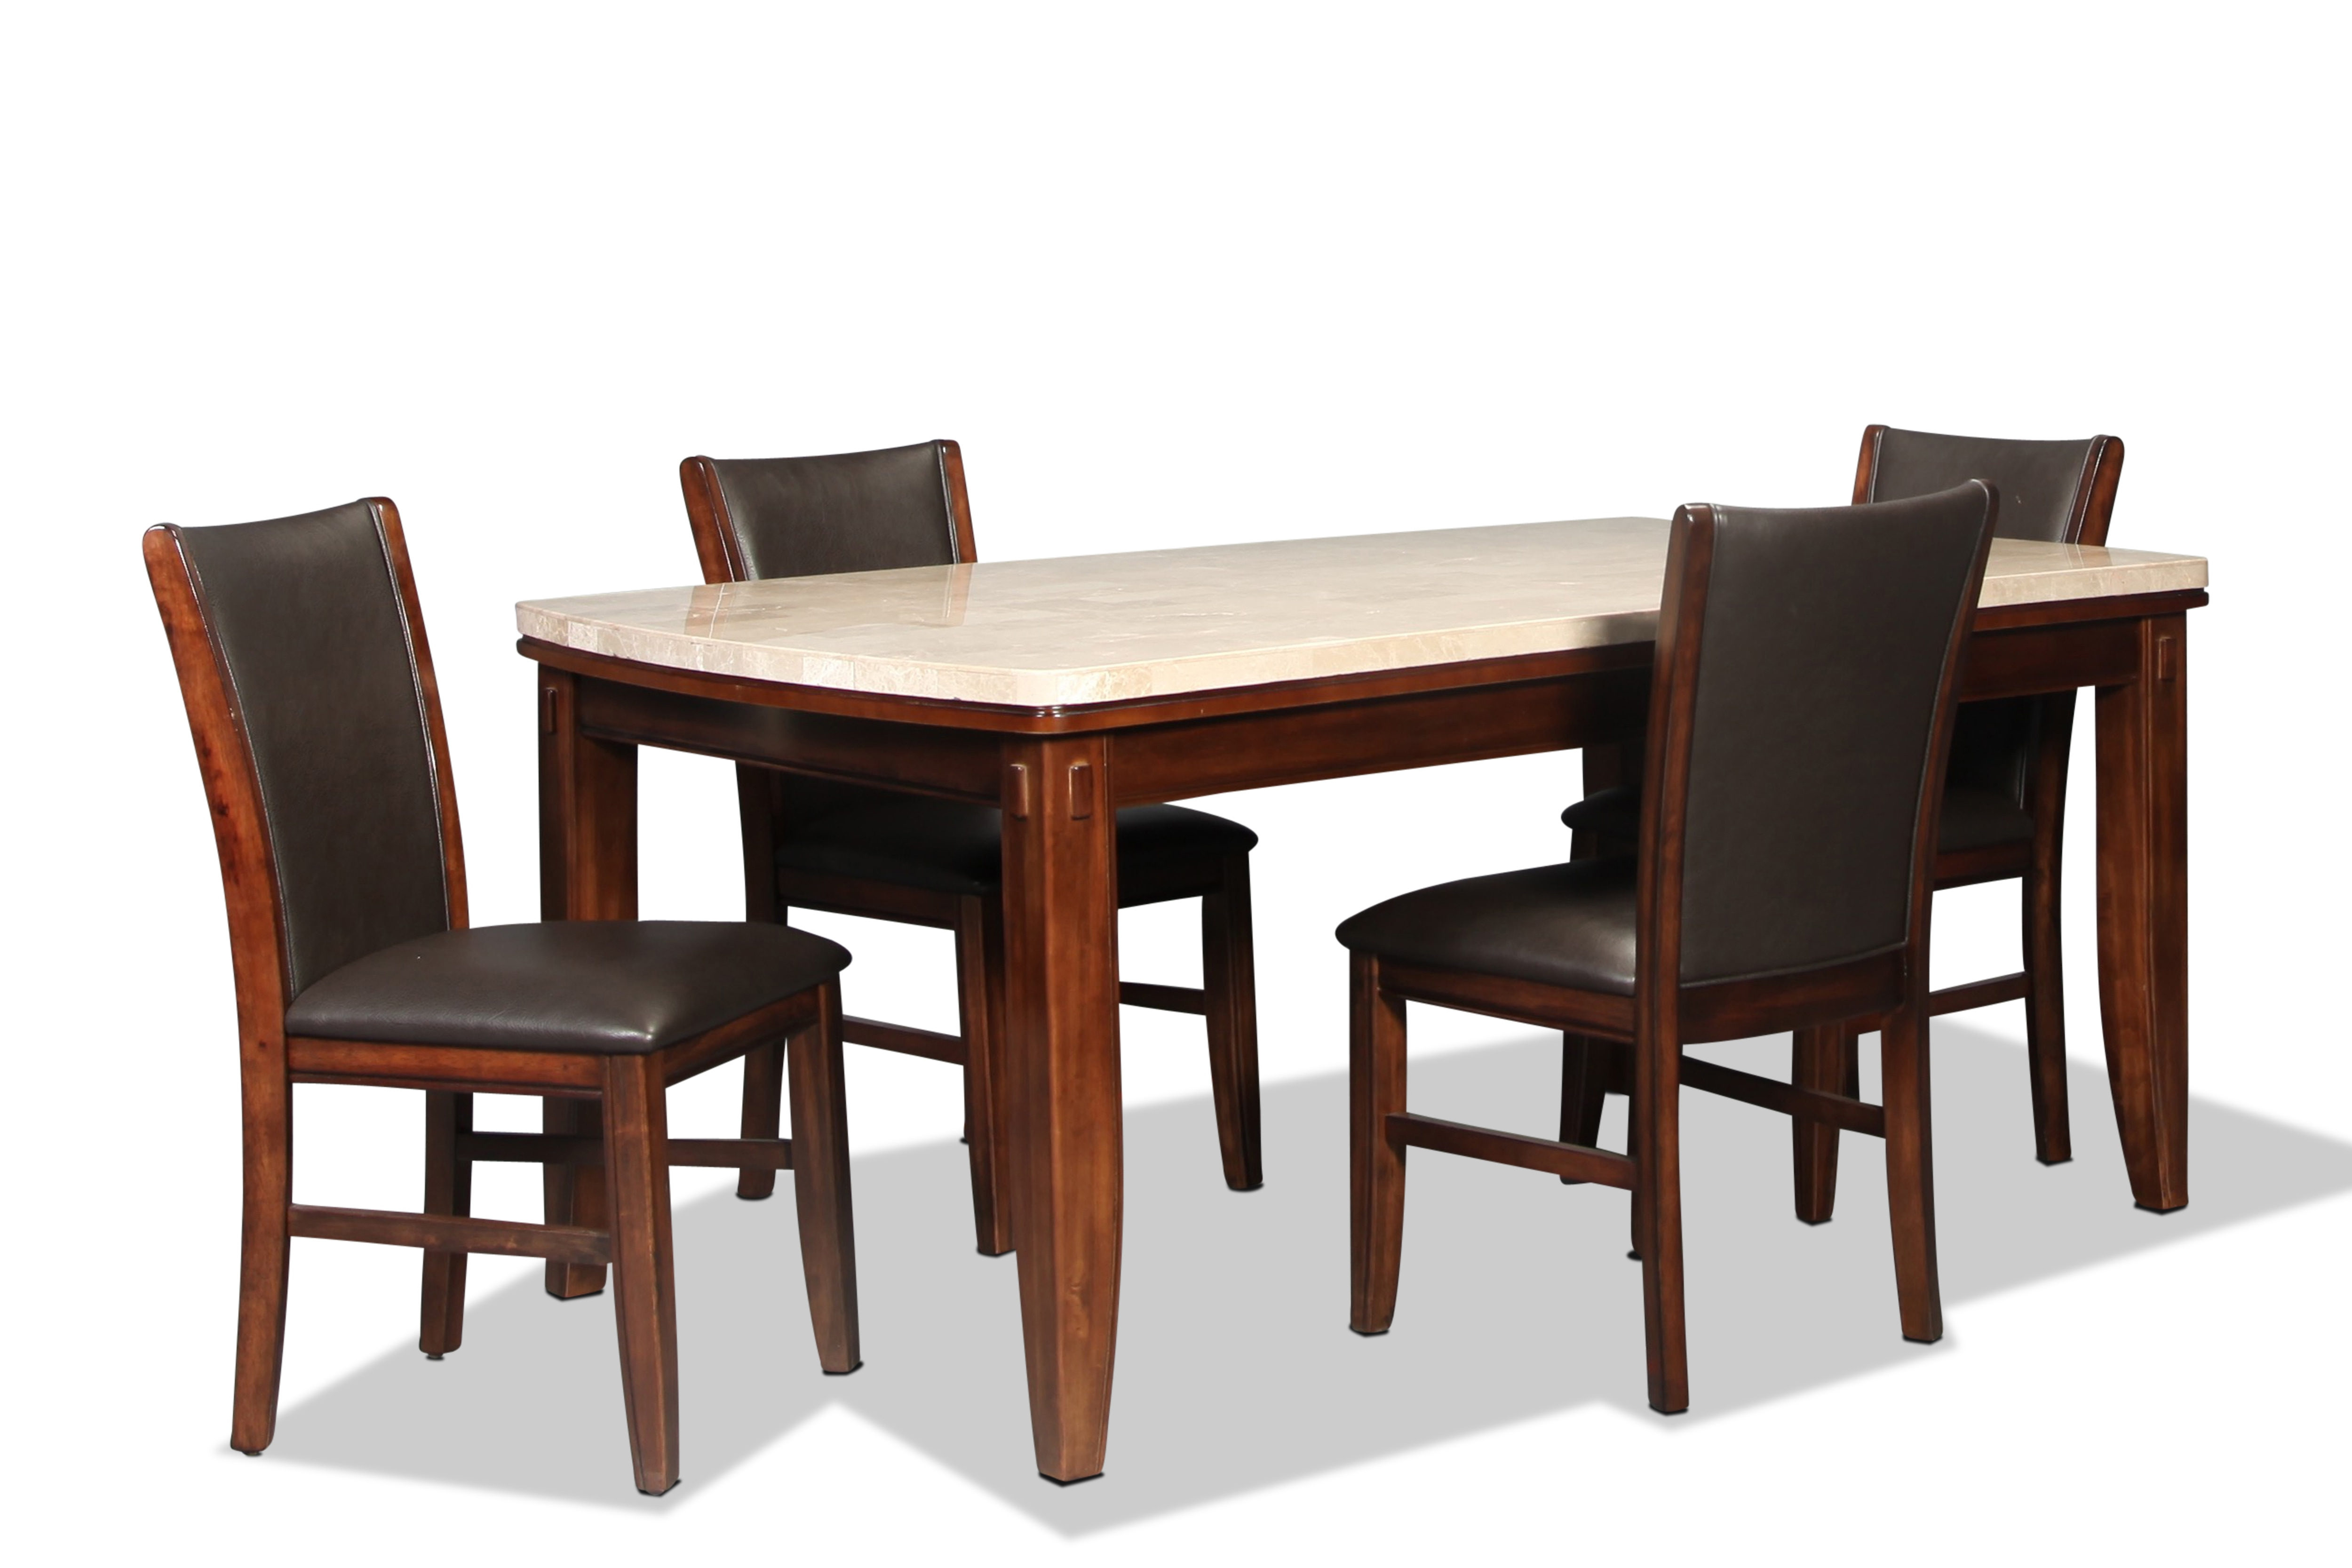 Ravenna Table and 4 Side Chairs